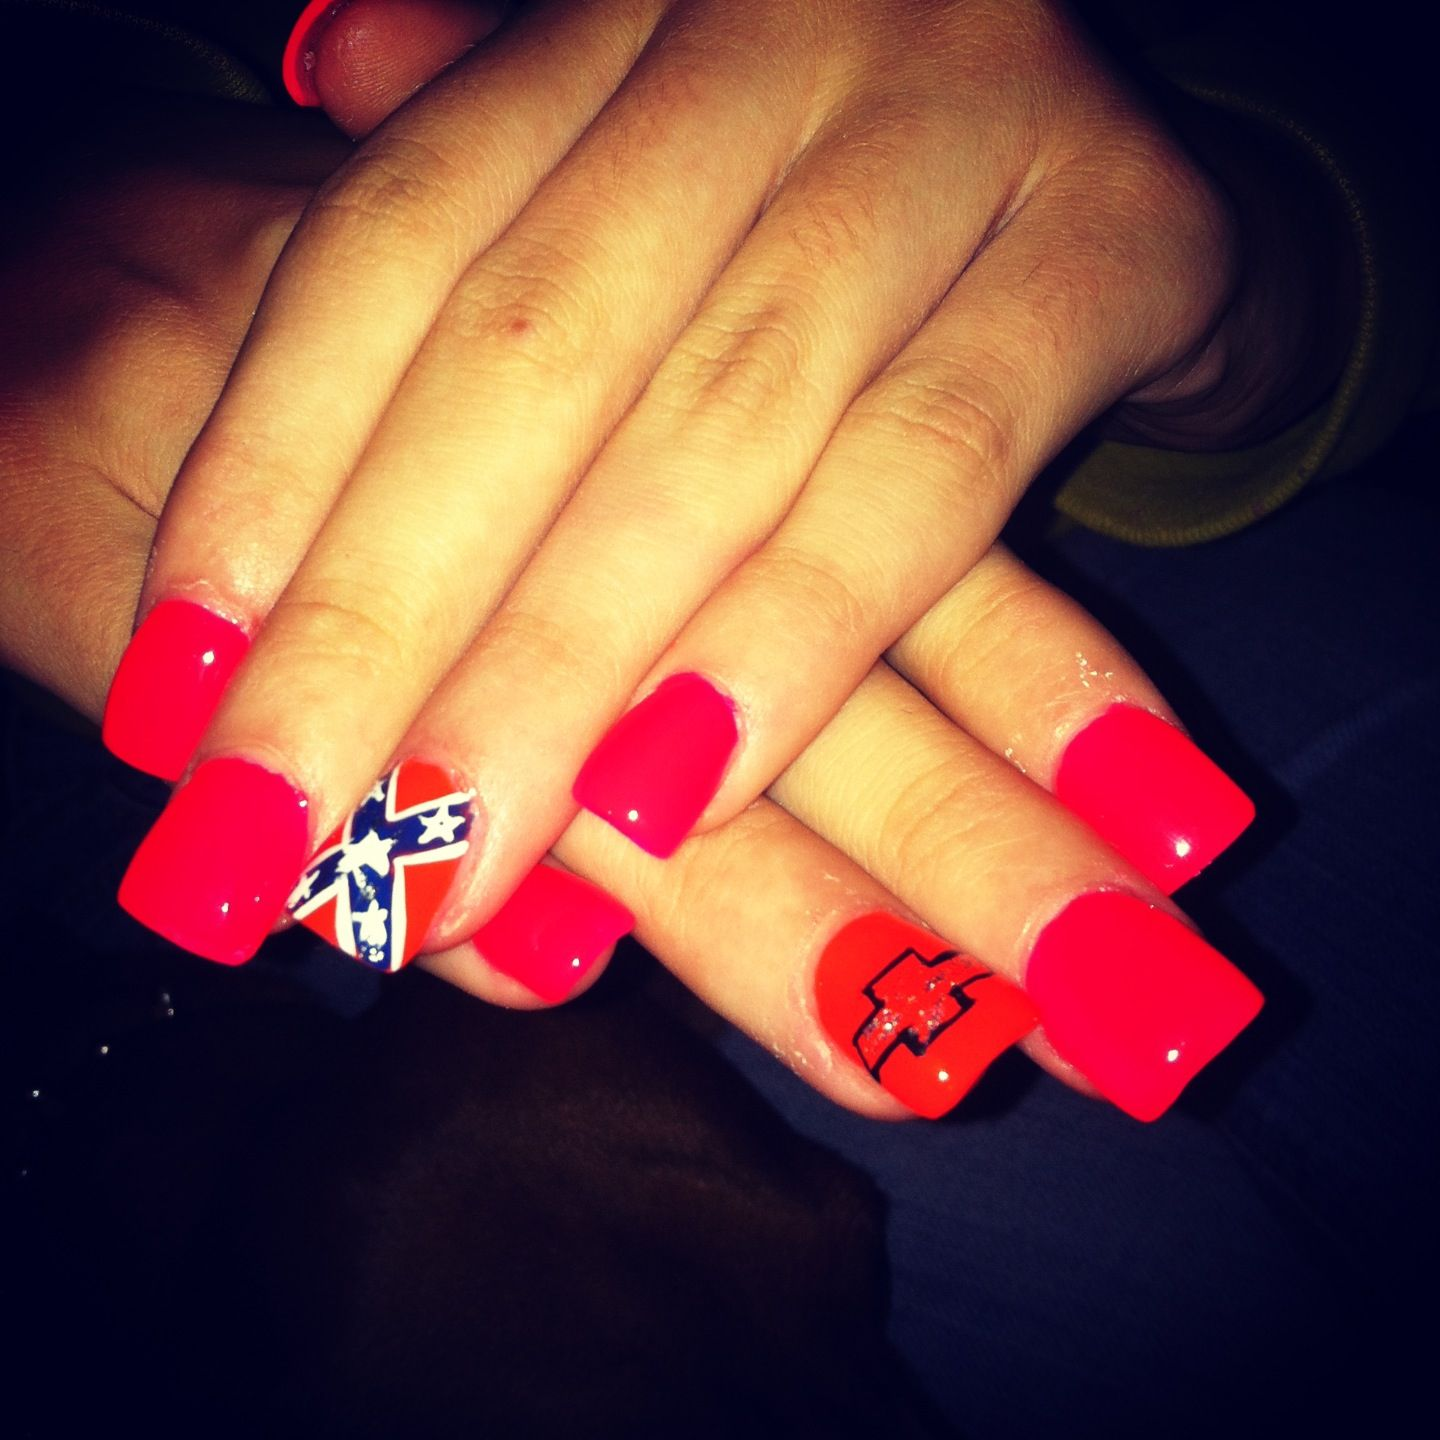 so cute, but if i asked the ladies at my nail salon to do this